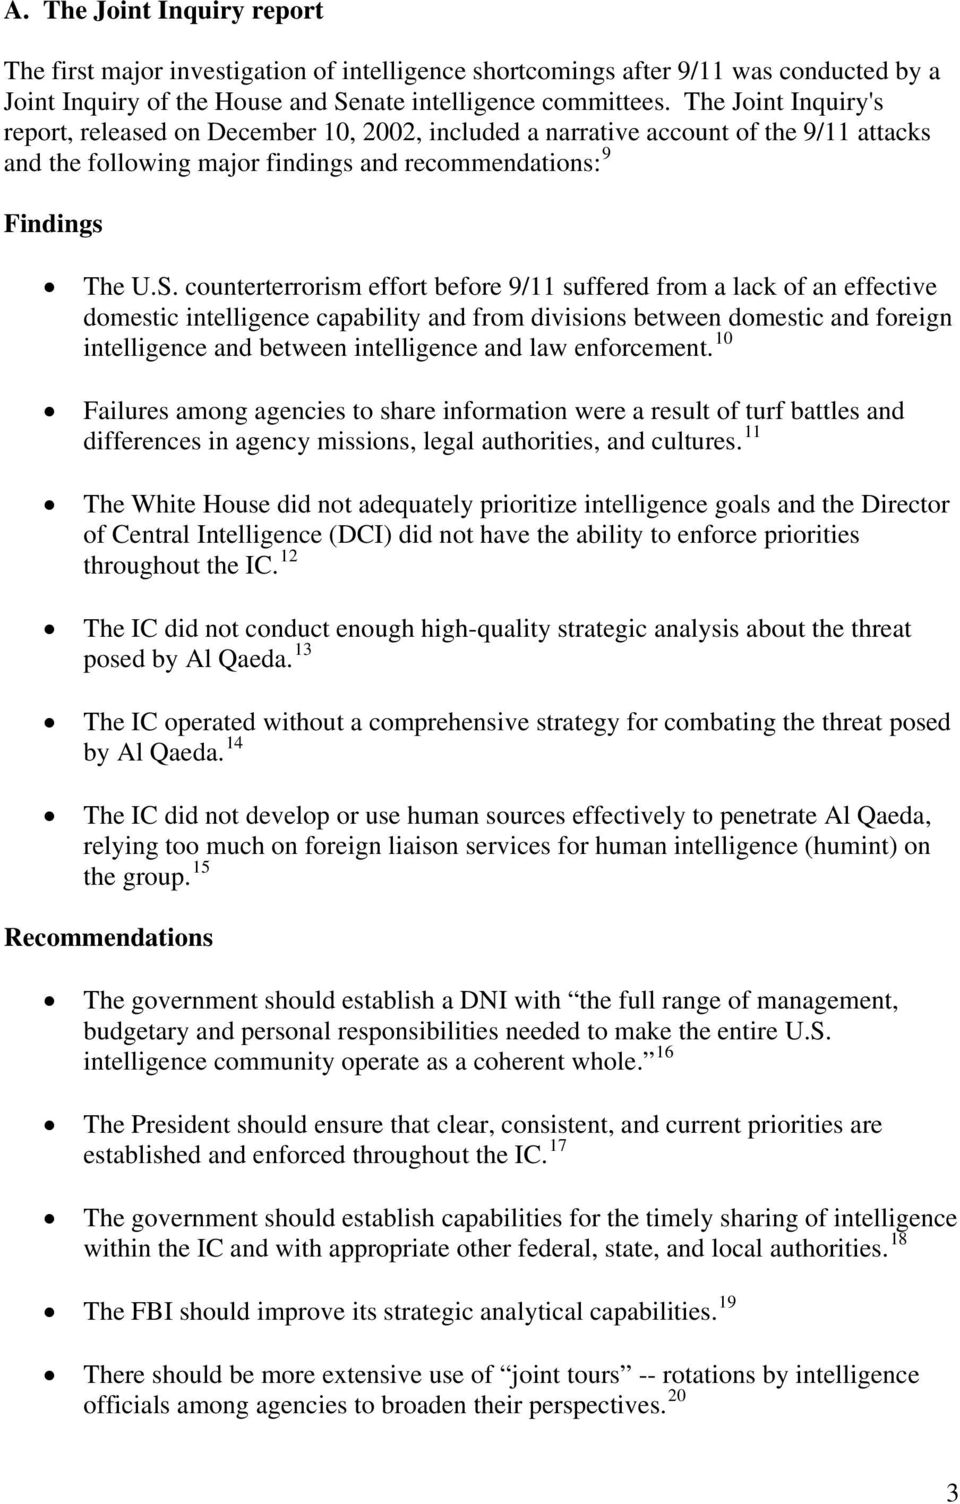 counterterrorism effort before 9/11 suffered from a lack of an effective domestic intelligence capability and from divisions between domestic and foreign intelligence and between intelligence and law